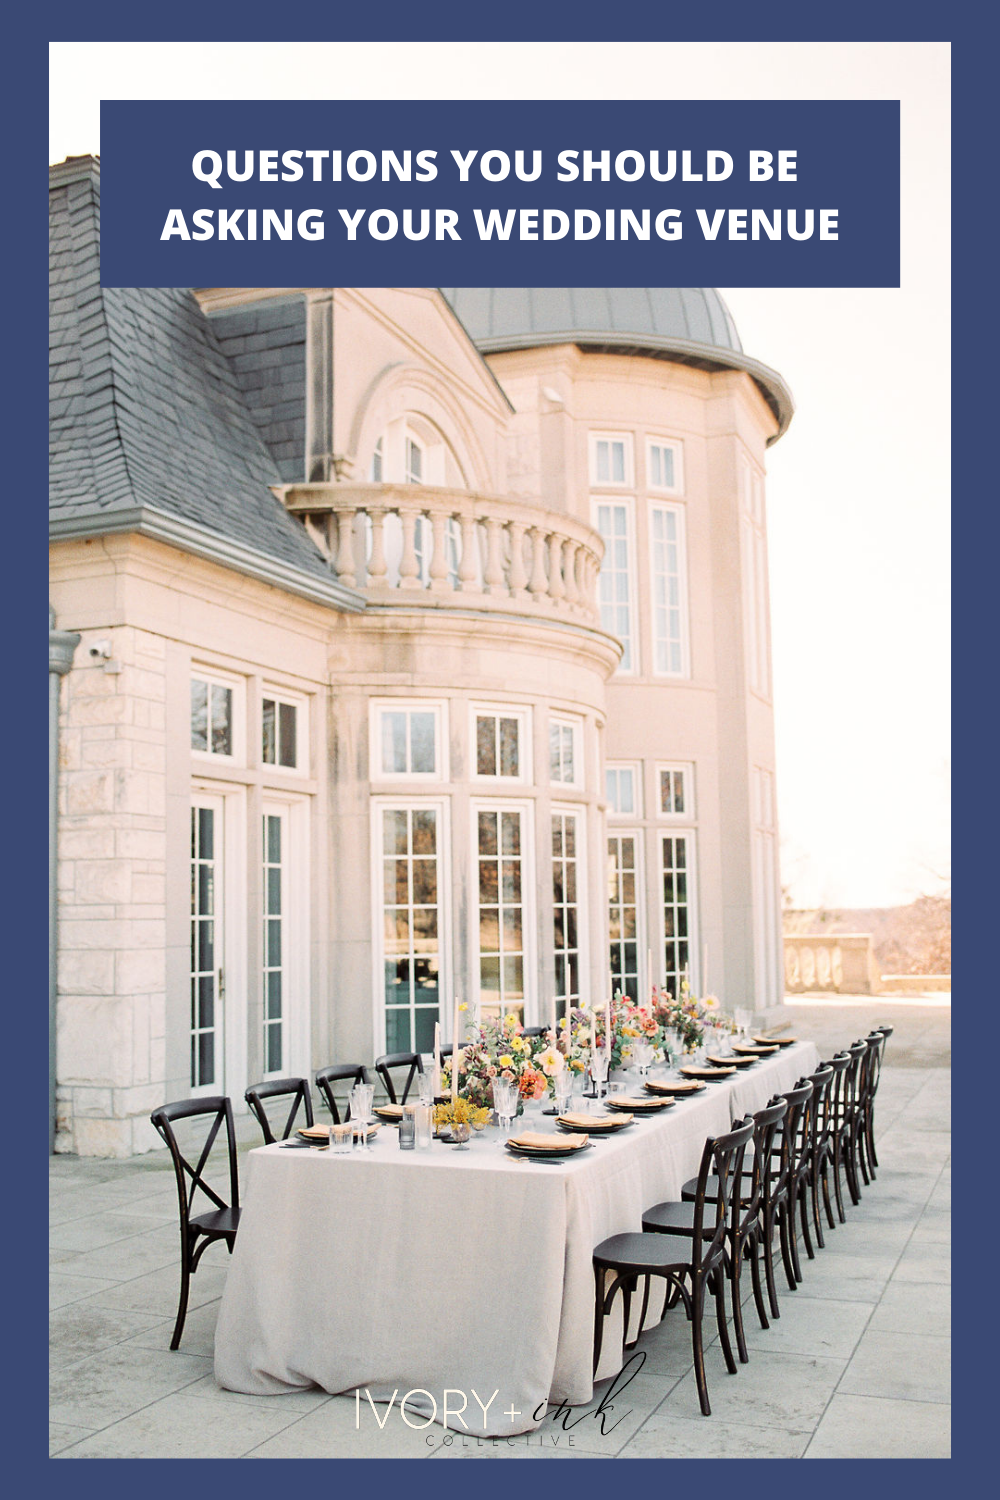 HERE ARE QUESTIONS YOU SHOULD BE ASKING YOUR WEDDING VENUE